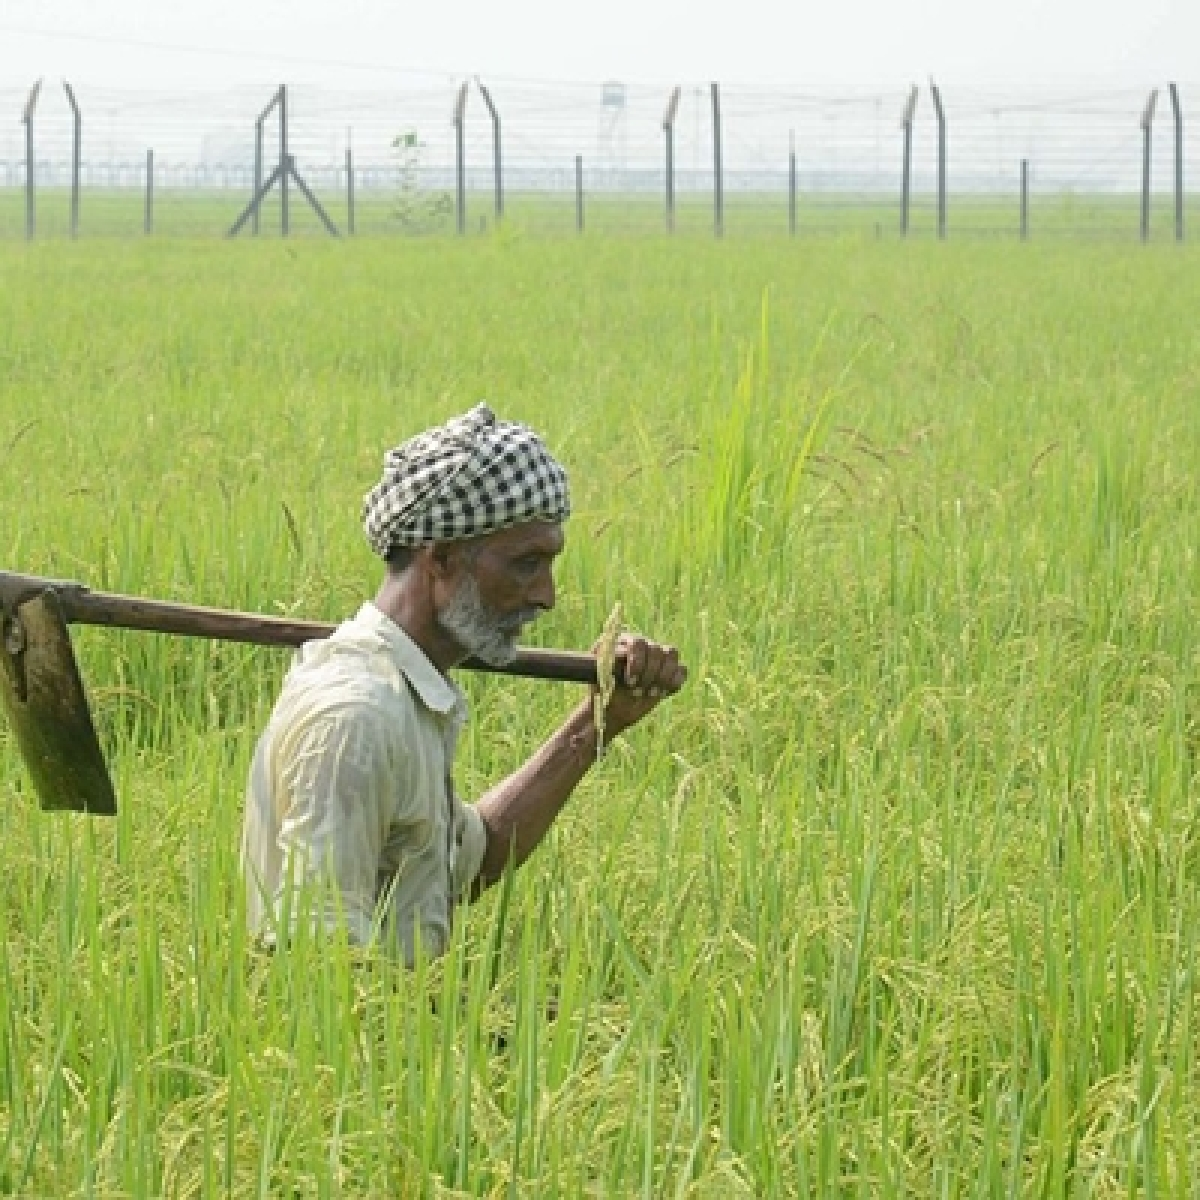 Teji Mandi: As monsoon arrives in India, agriculture sector likely to improve